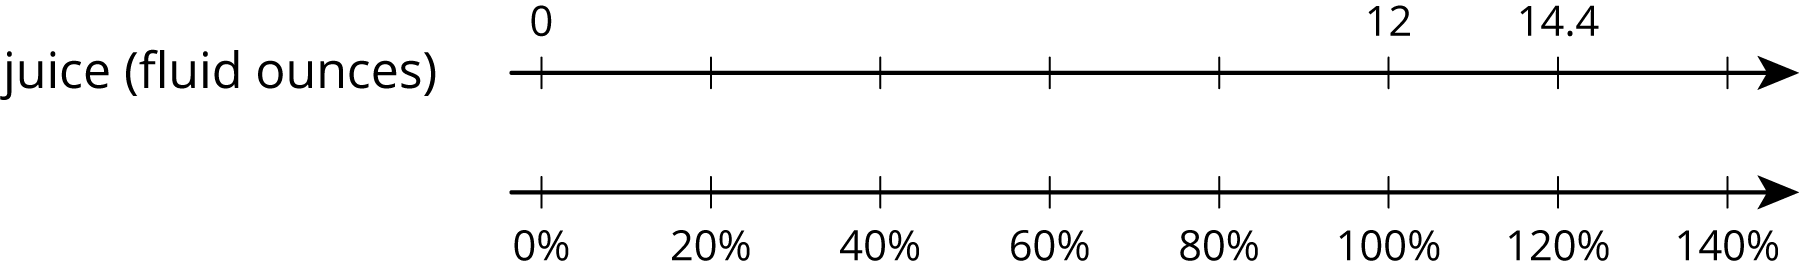 """A double number line for """"juice in fluid ounces"""" with 8 evenly spaced tick marks. The top number line, the number 0 is on the first tick mark, 12 on the sixth, and 14 point 4 on the seventh. The bottom number line, starting with the first tick mark, zero percent, 20 percent, 40 percent, 60 percent, 80 percent, 100 percent, 120 percent and 140 percent are labeled."""